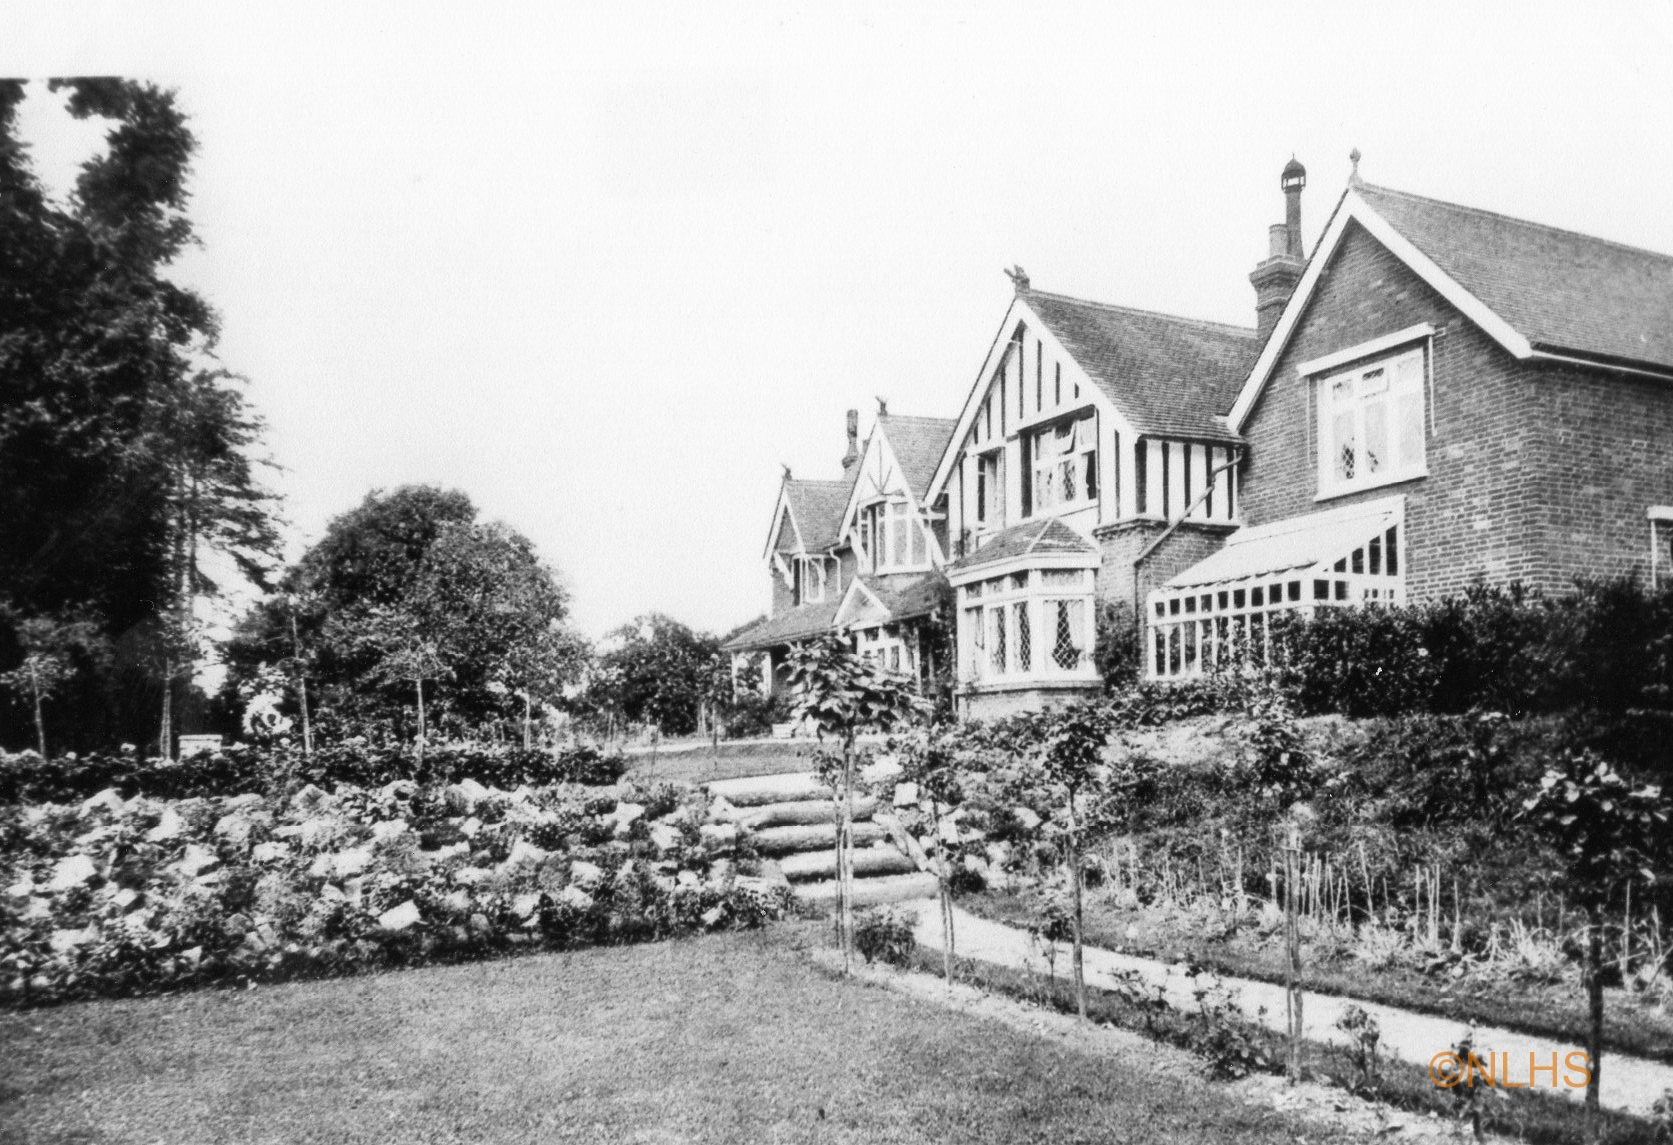 122-Melton Hall, the home of the Cottle Family